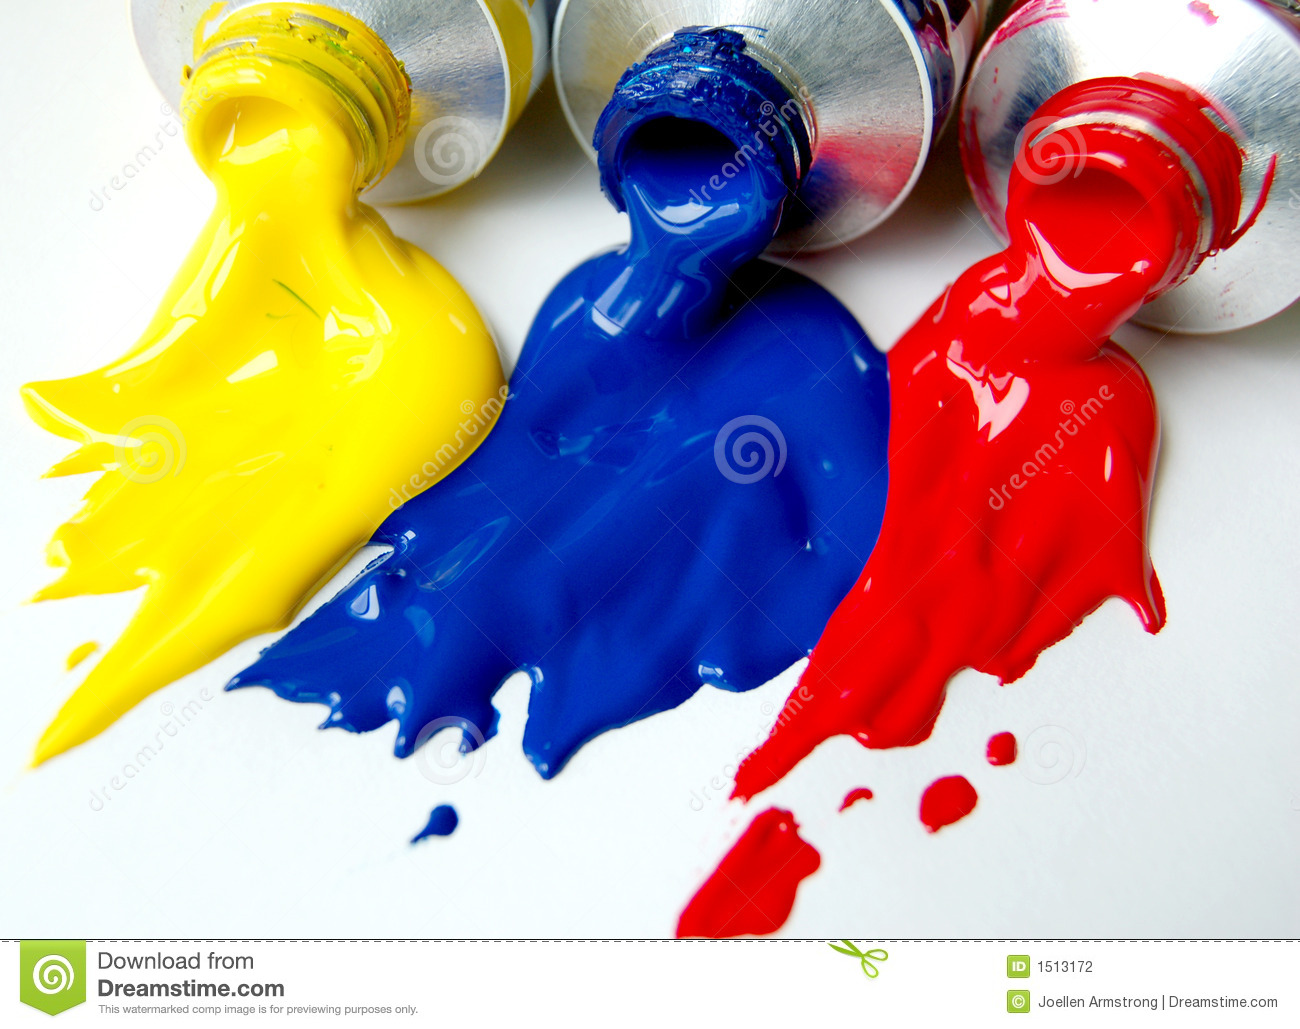 Primary Colours Of Paint Are Red Blue And Yellow